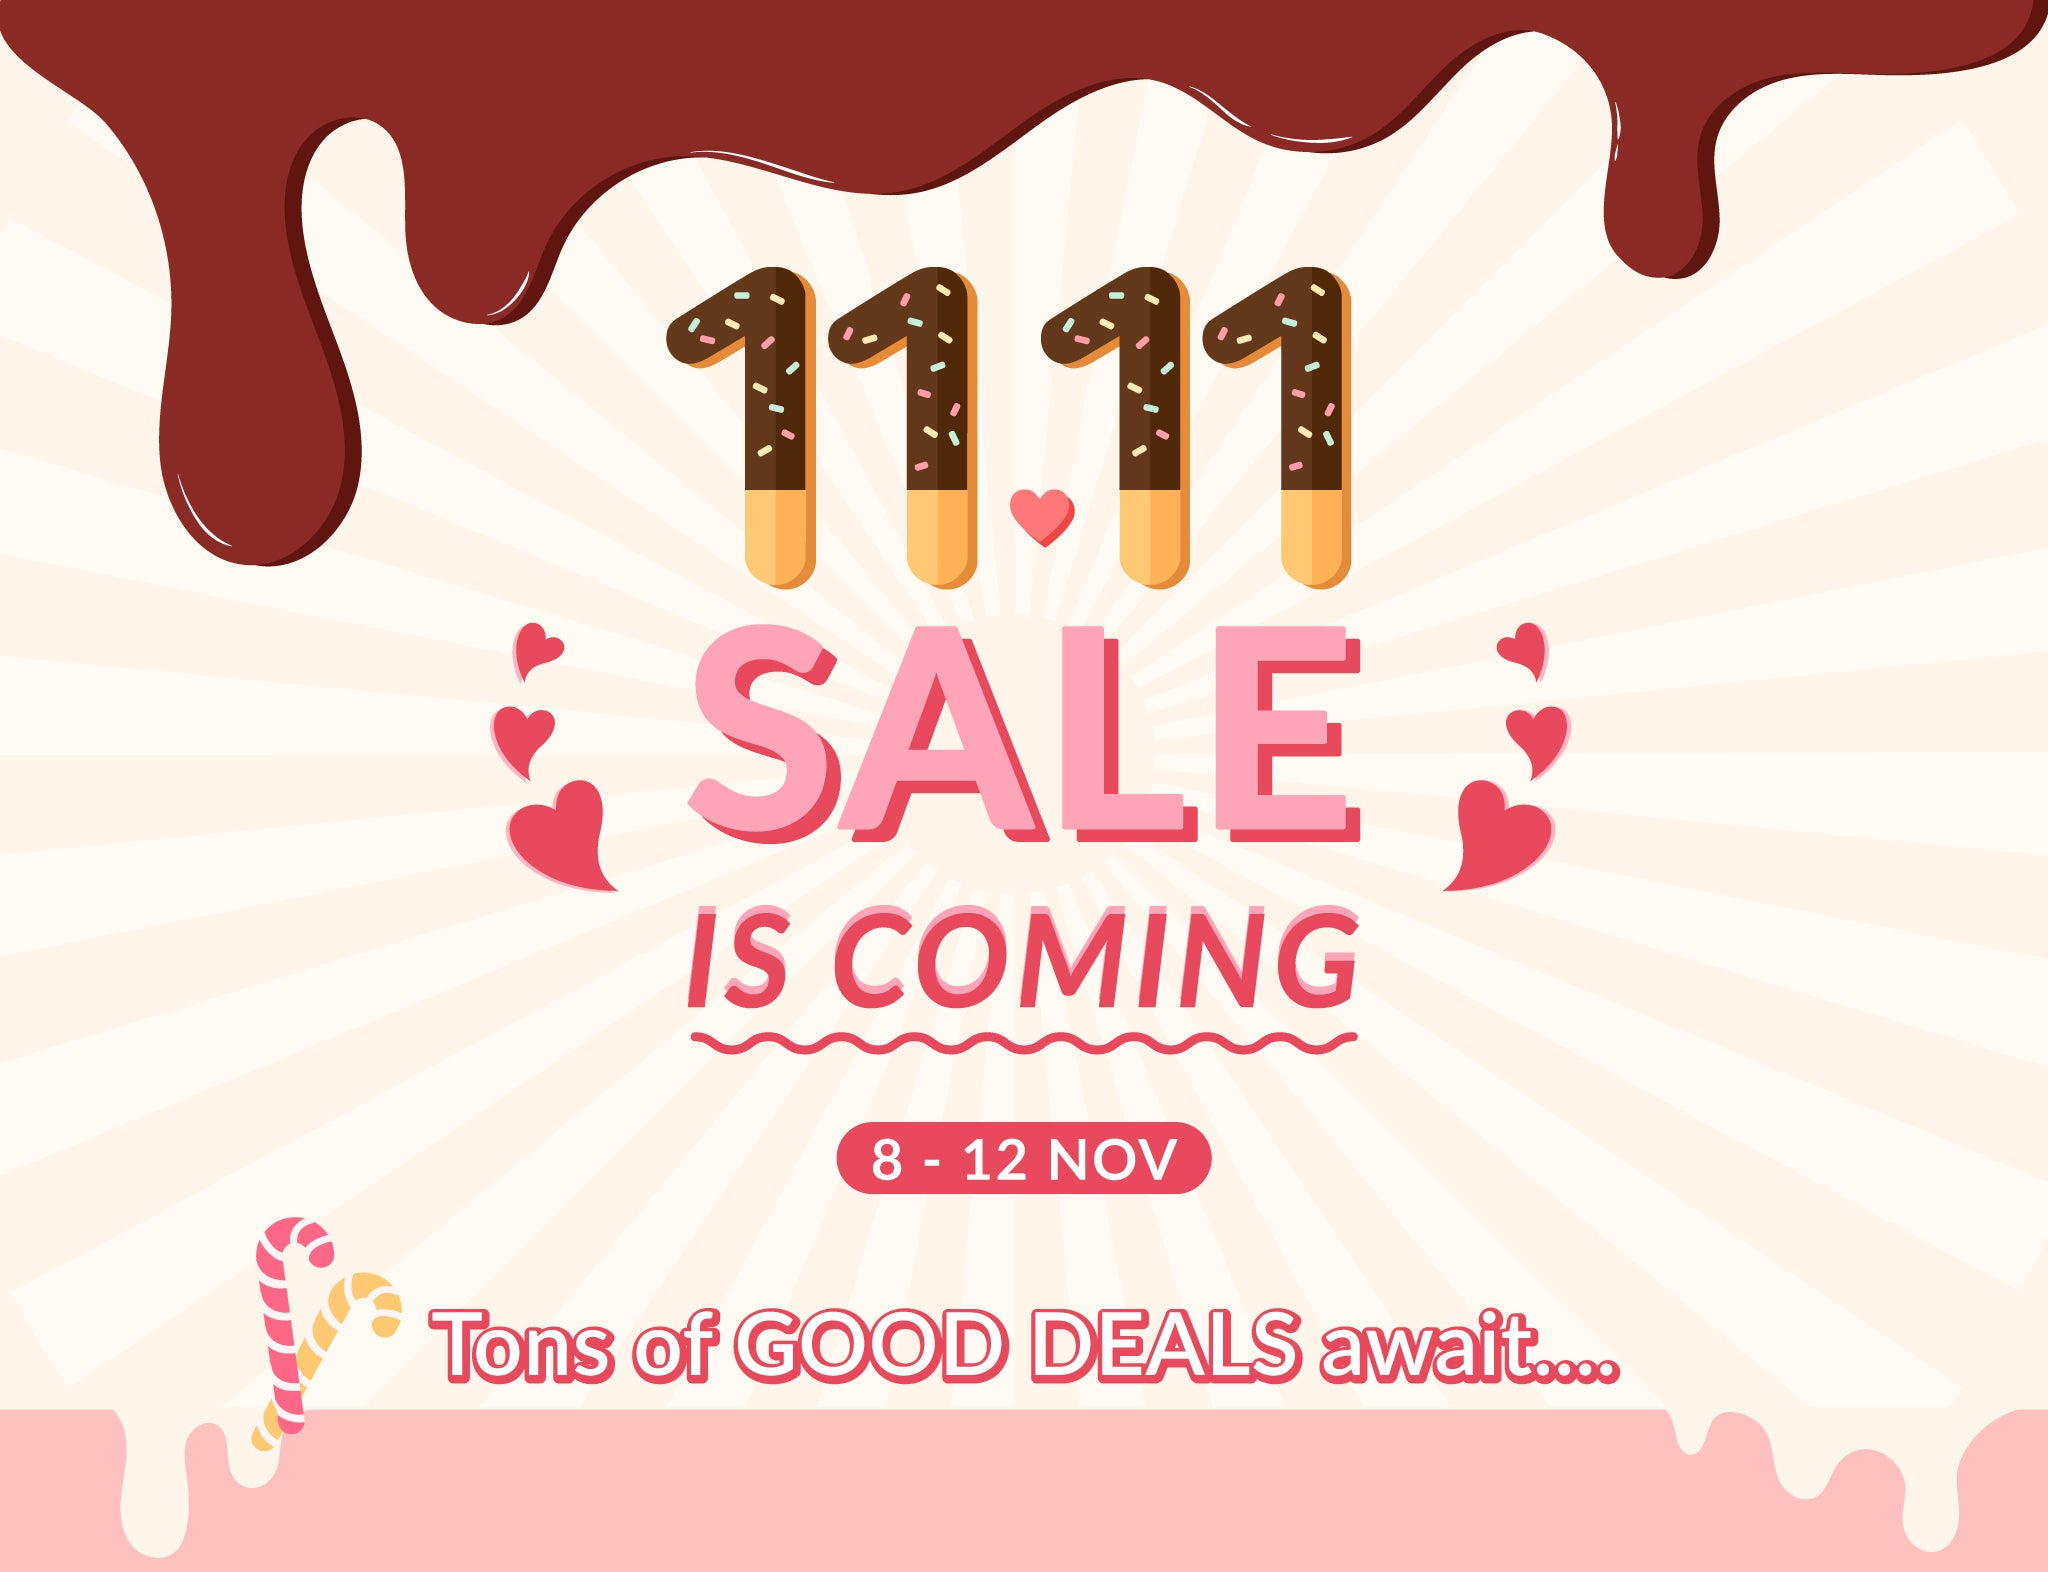 11.11 Is Coming!